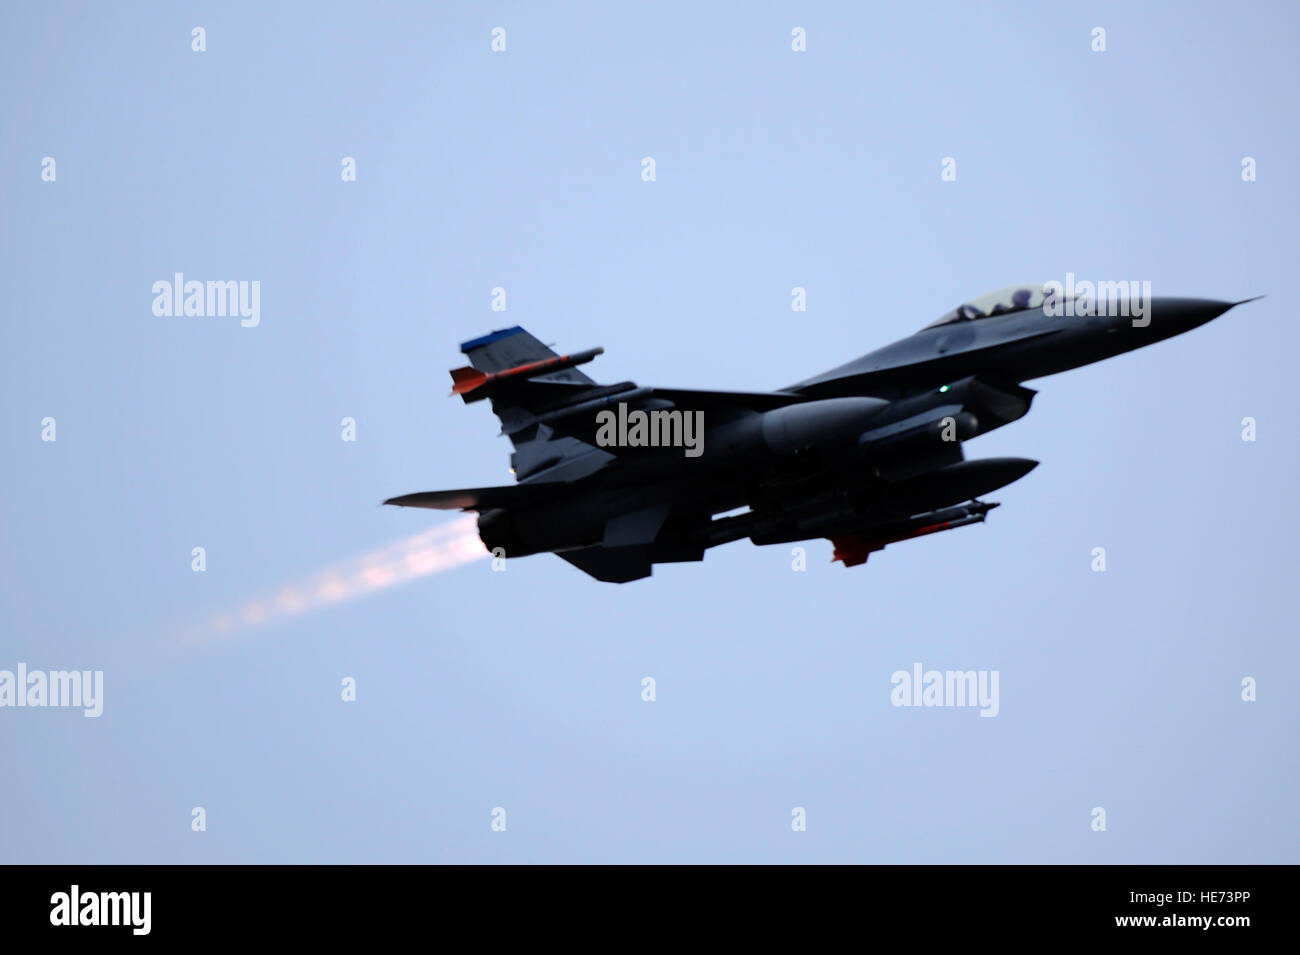 MISAWA AIR BASE, Japan - An F-16 Fighting Falcon from the 35th Fighter Squadron out of Kunsan Air Base, Korea takes - Stock Image